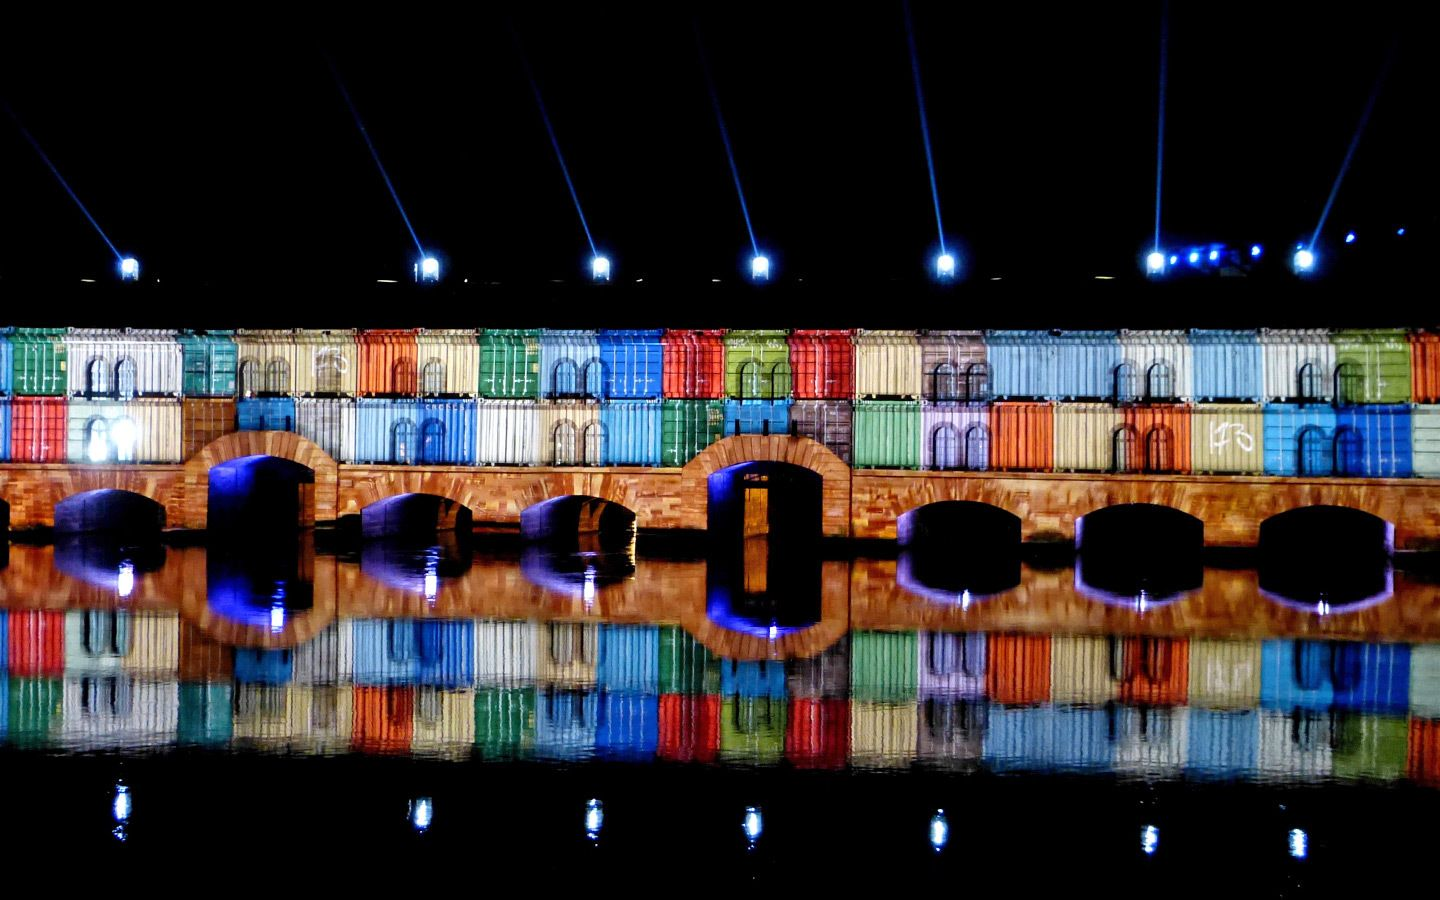 Light show at Barrage Vaubin, one of the things to do in Strasbourg